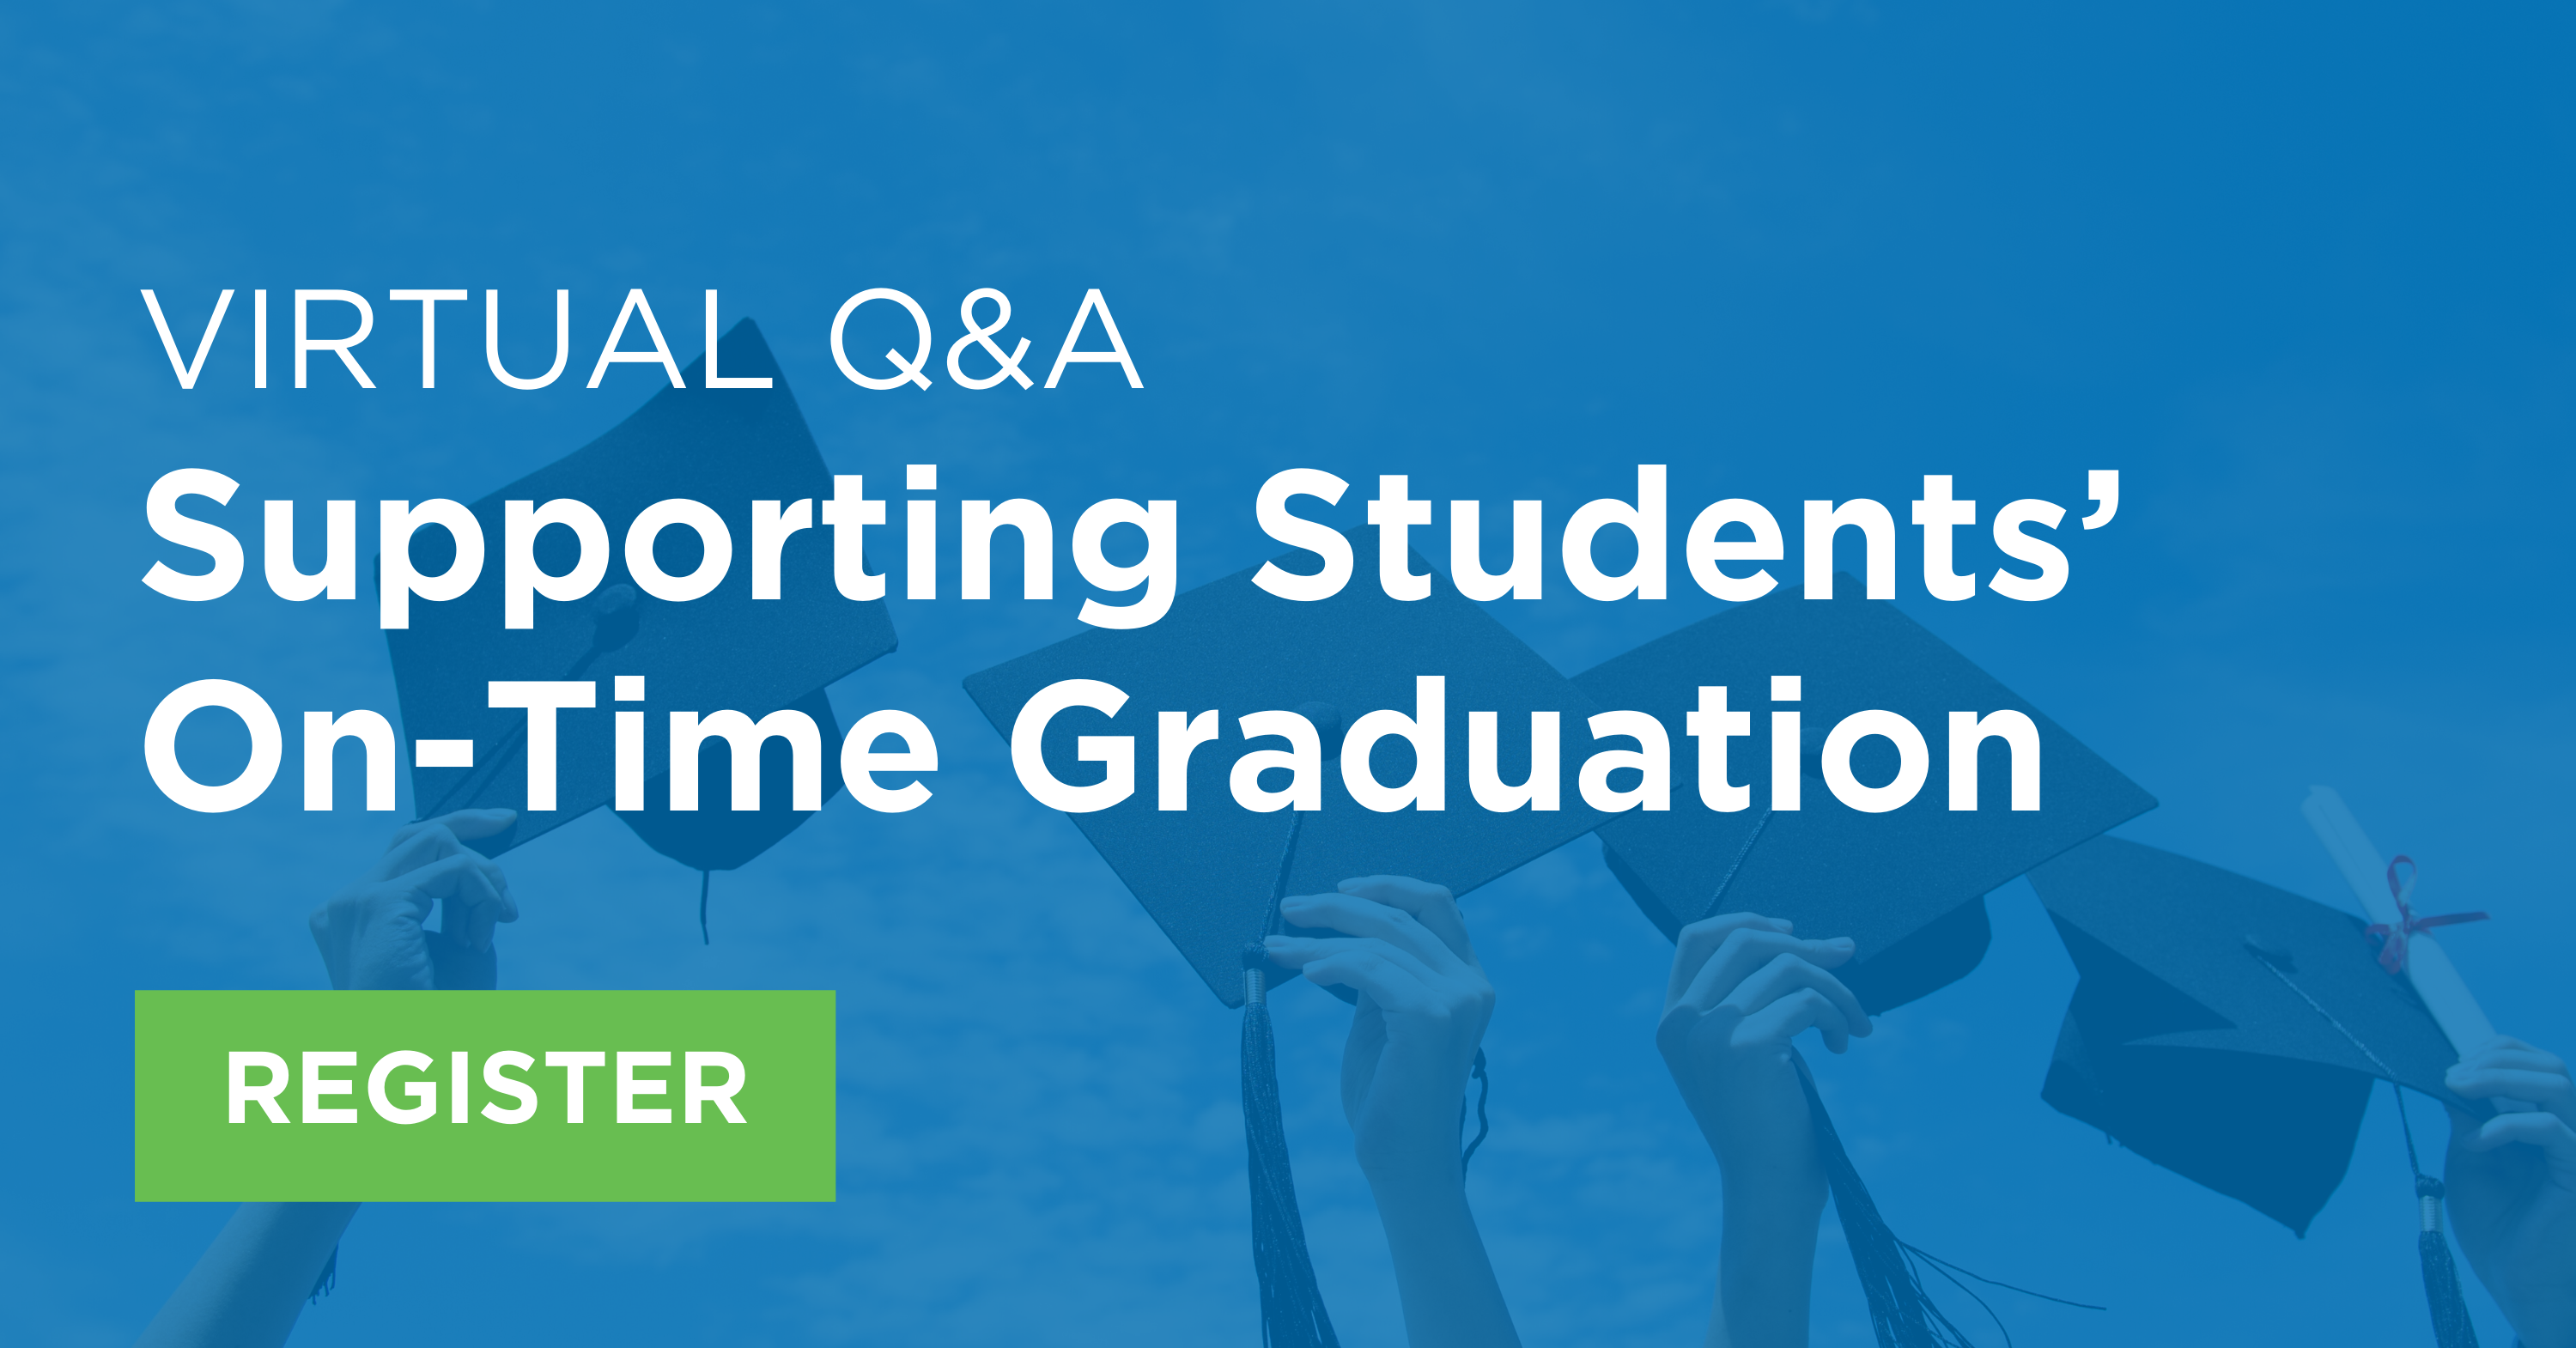 Virtual Q&A_ Supporting Students' On-Time Graduation Image